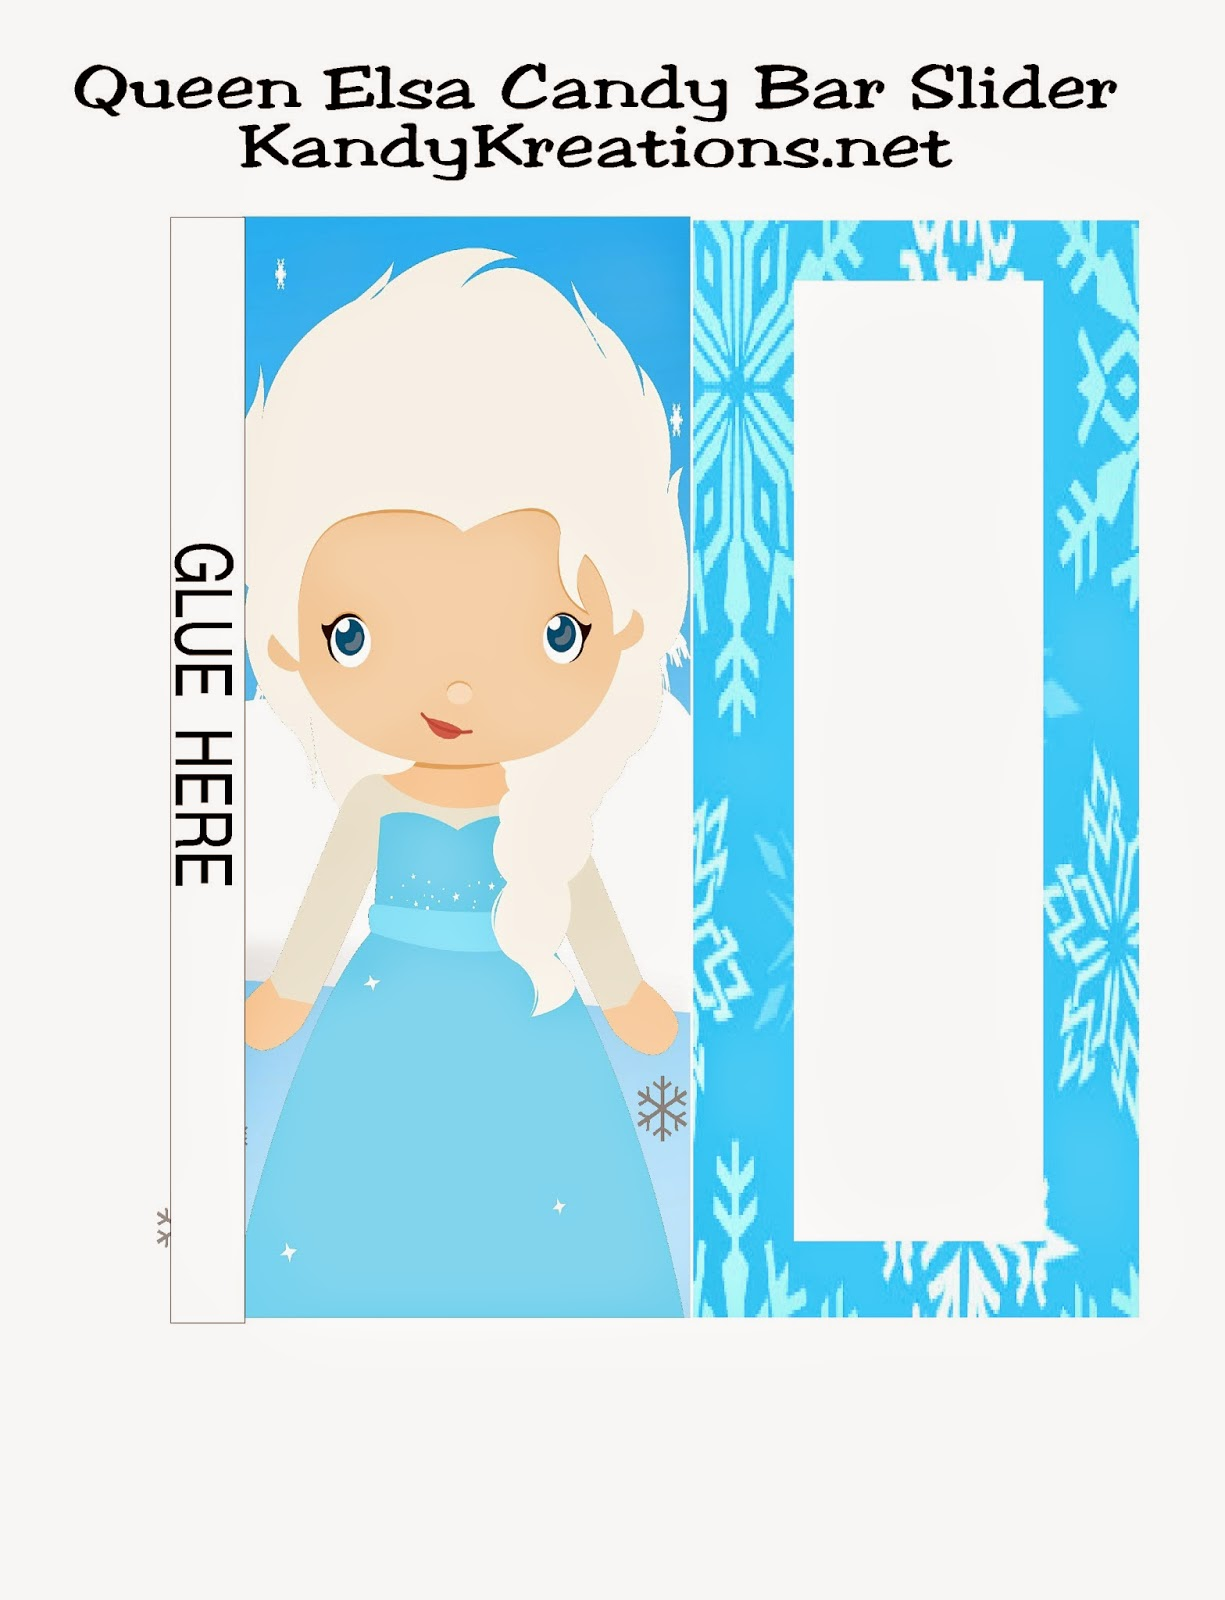 Queen Elsa Frozen Candy Bar Wrappers Free Printable by KandyKreations